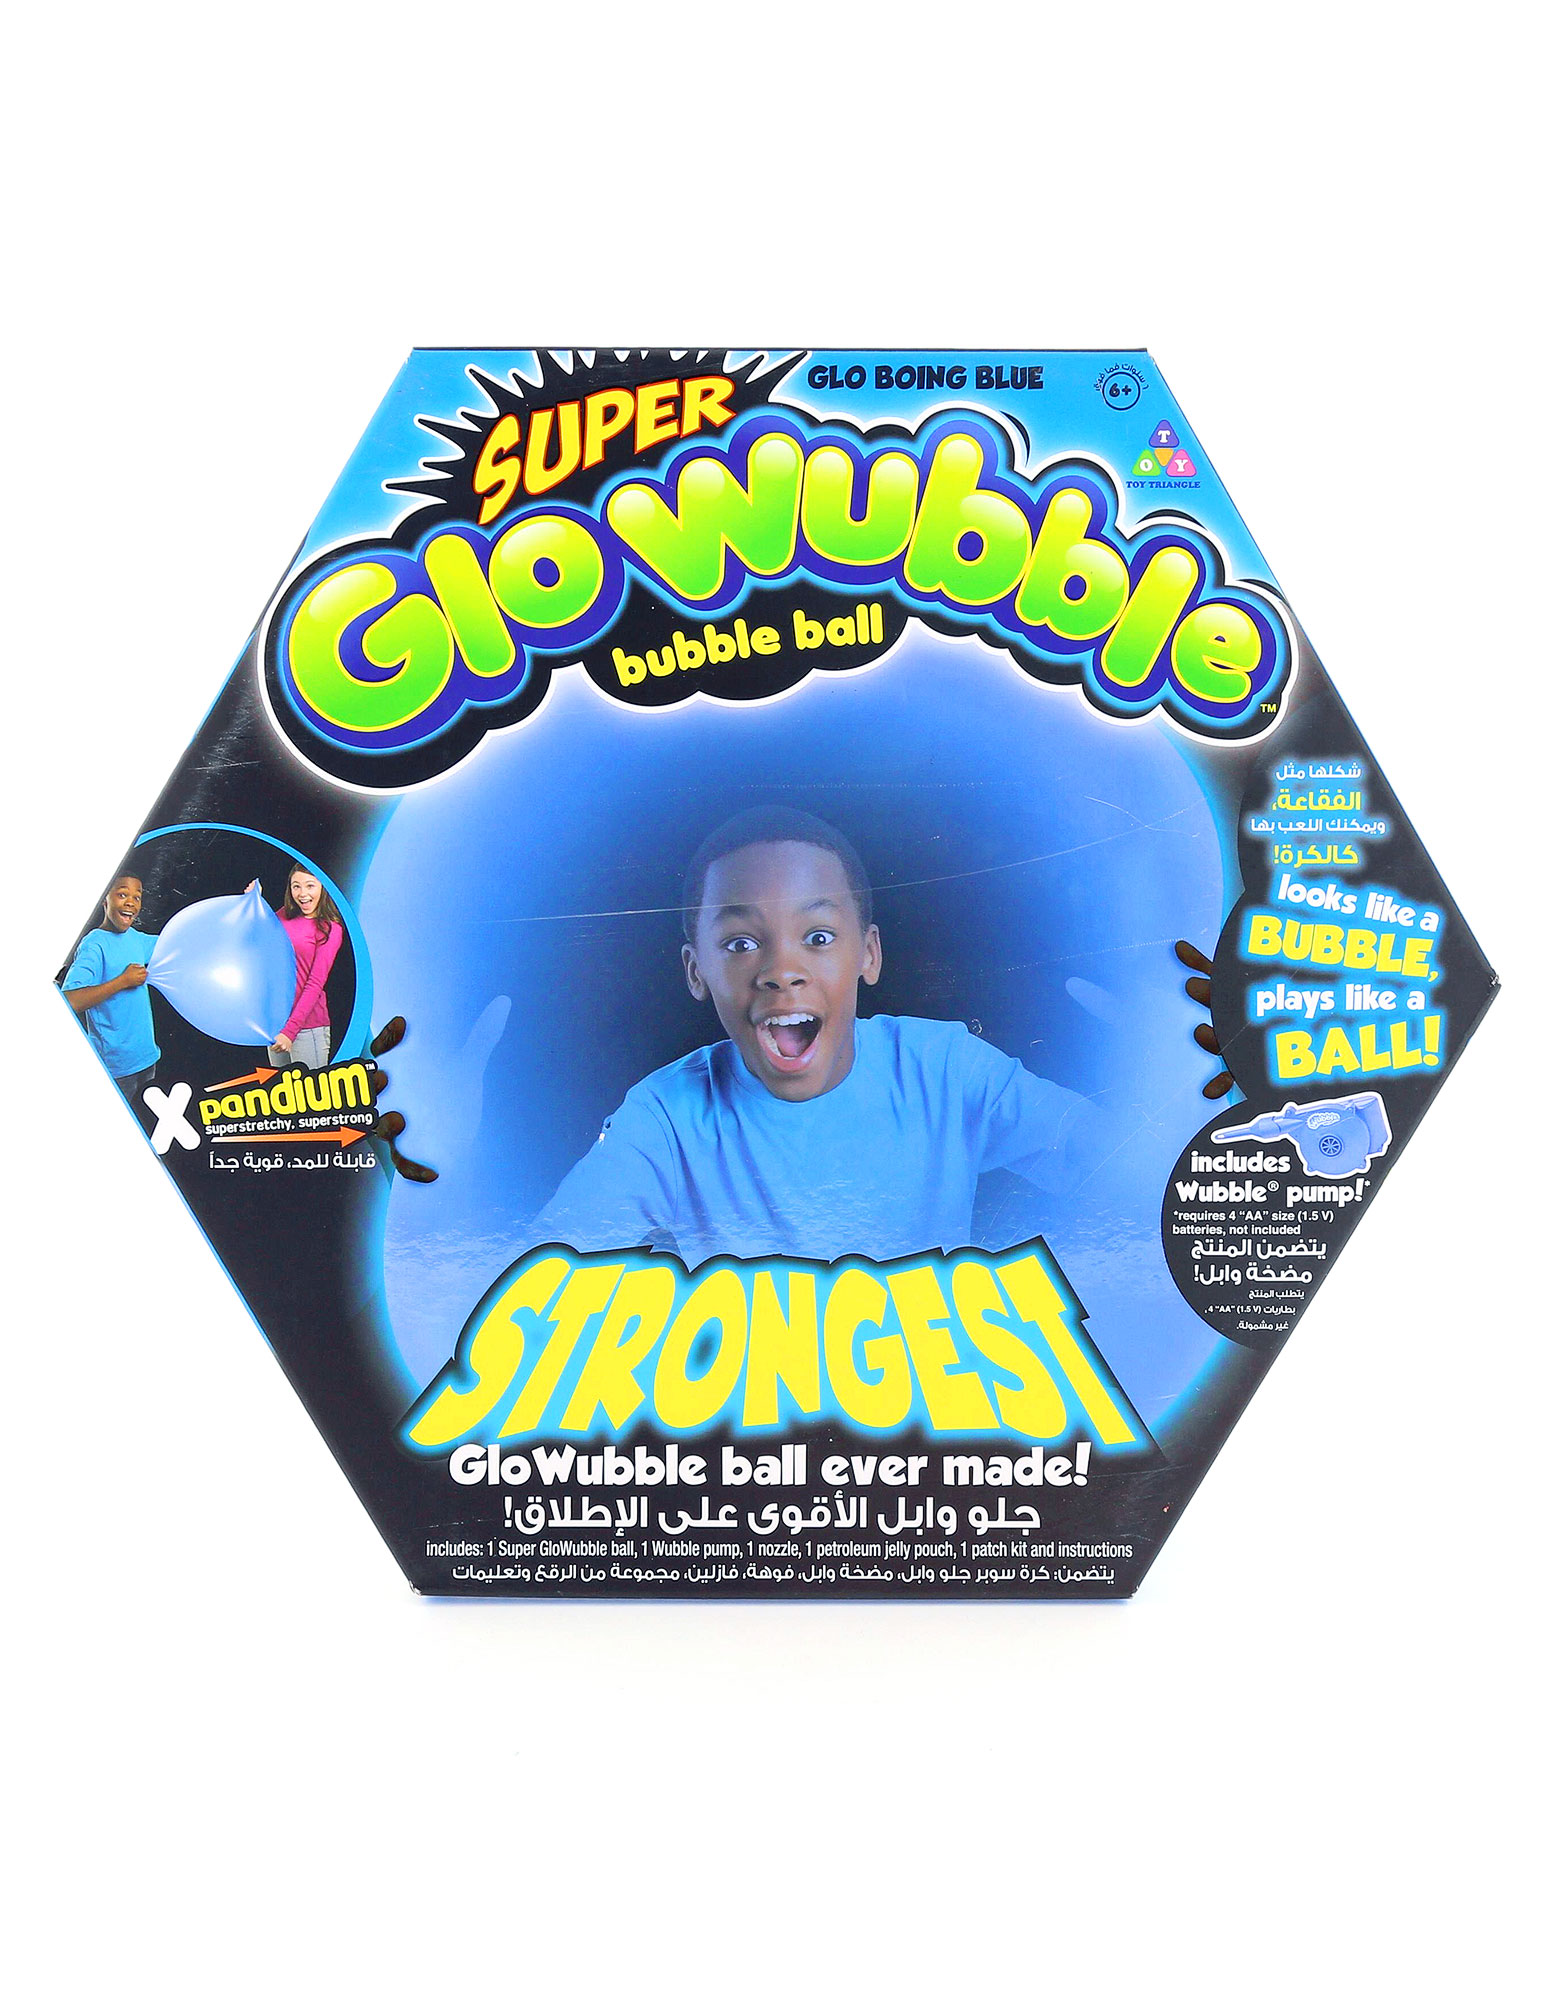 Wubble Bubble Super GloWubble Bubble Ball Glo Boing Blue With Pump